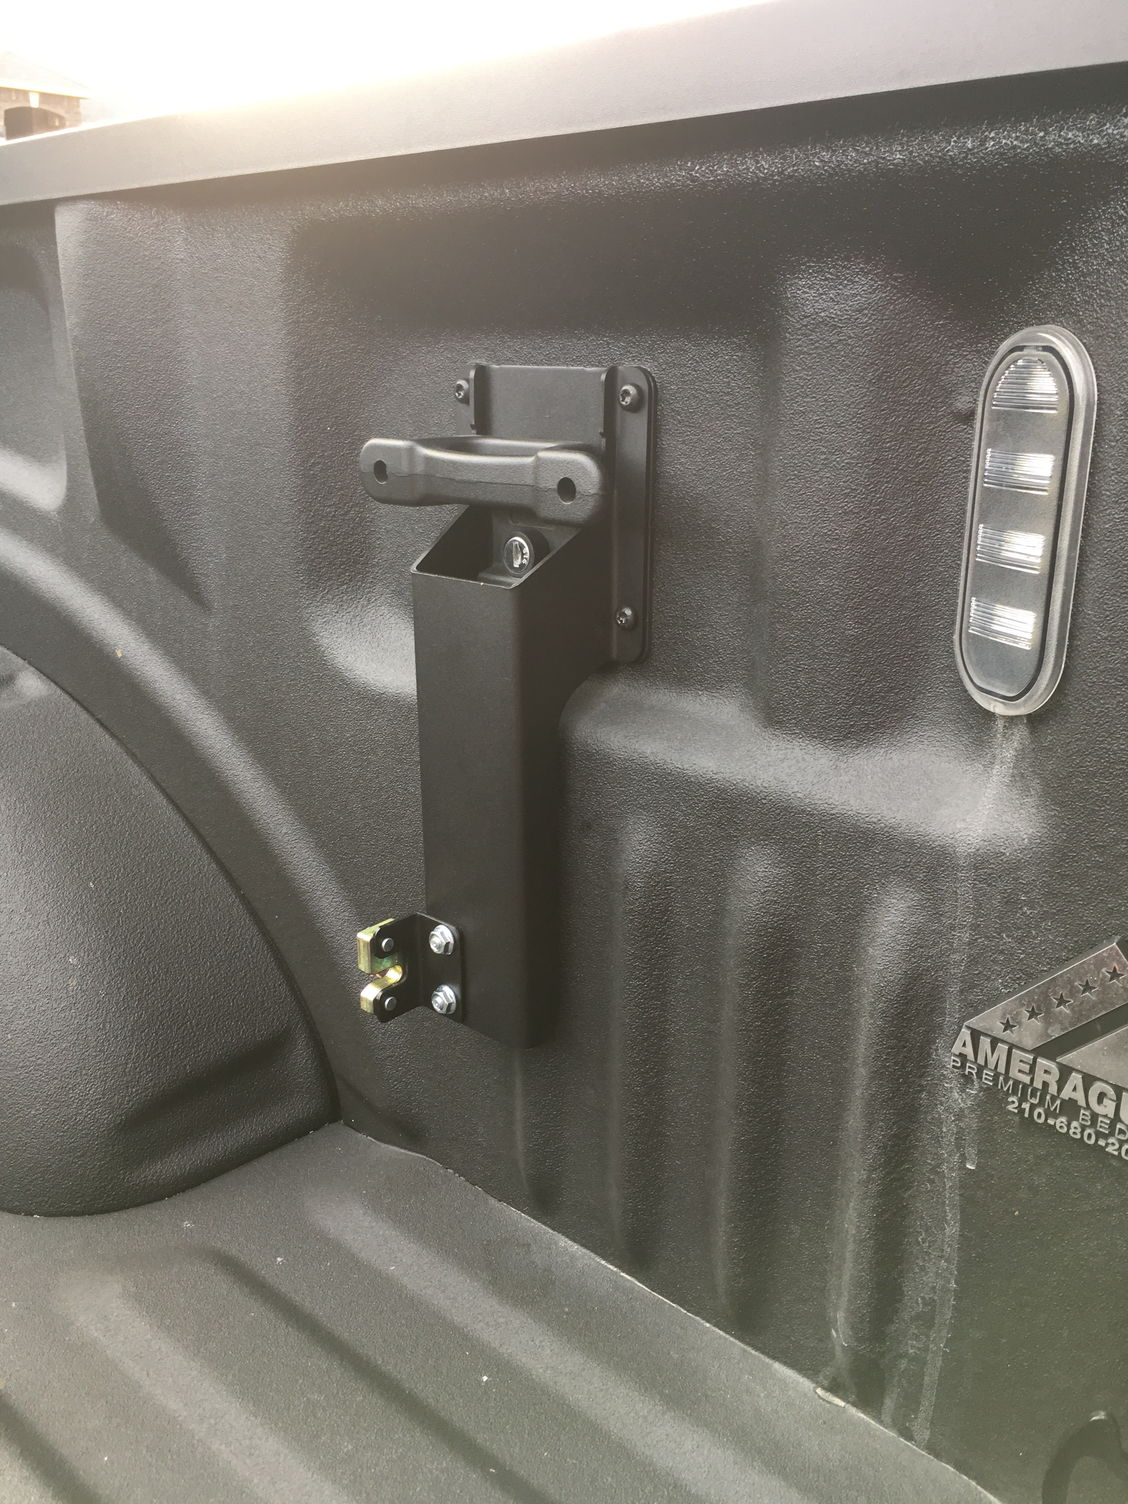 Ford F 150 Tool Box >> UnderCover Swing Case Truck Toolbox Install - Ford F150 Forum - Community of Ford Truck Fans